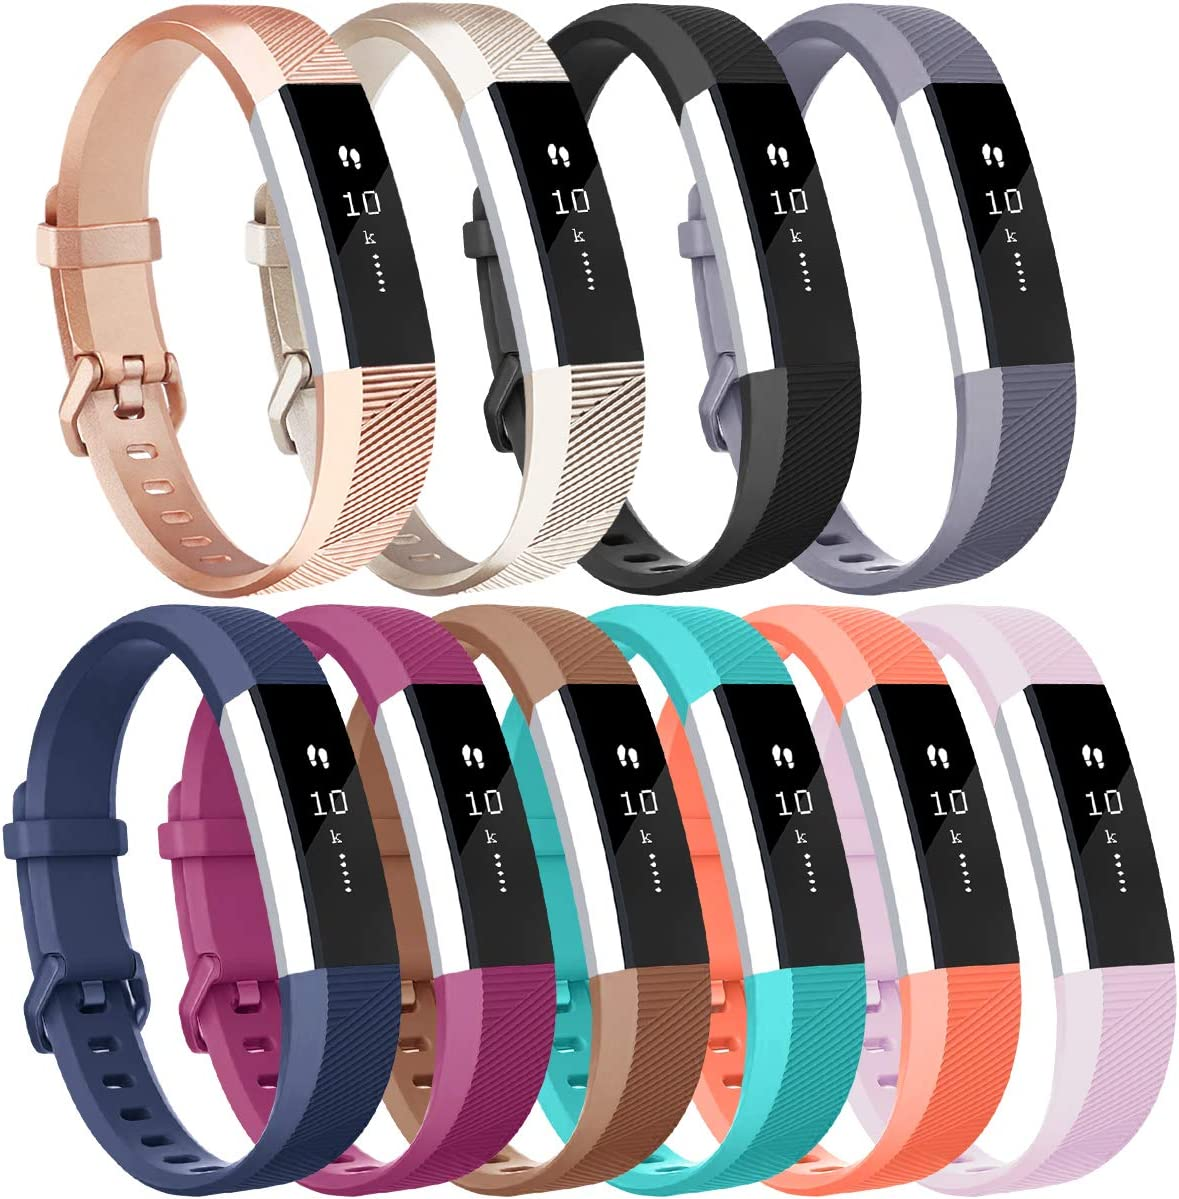 Replacement Wristband Band Strap Bracelet For Fitbit Alta HR Sport High Quality